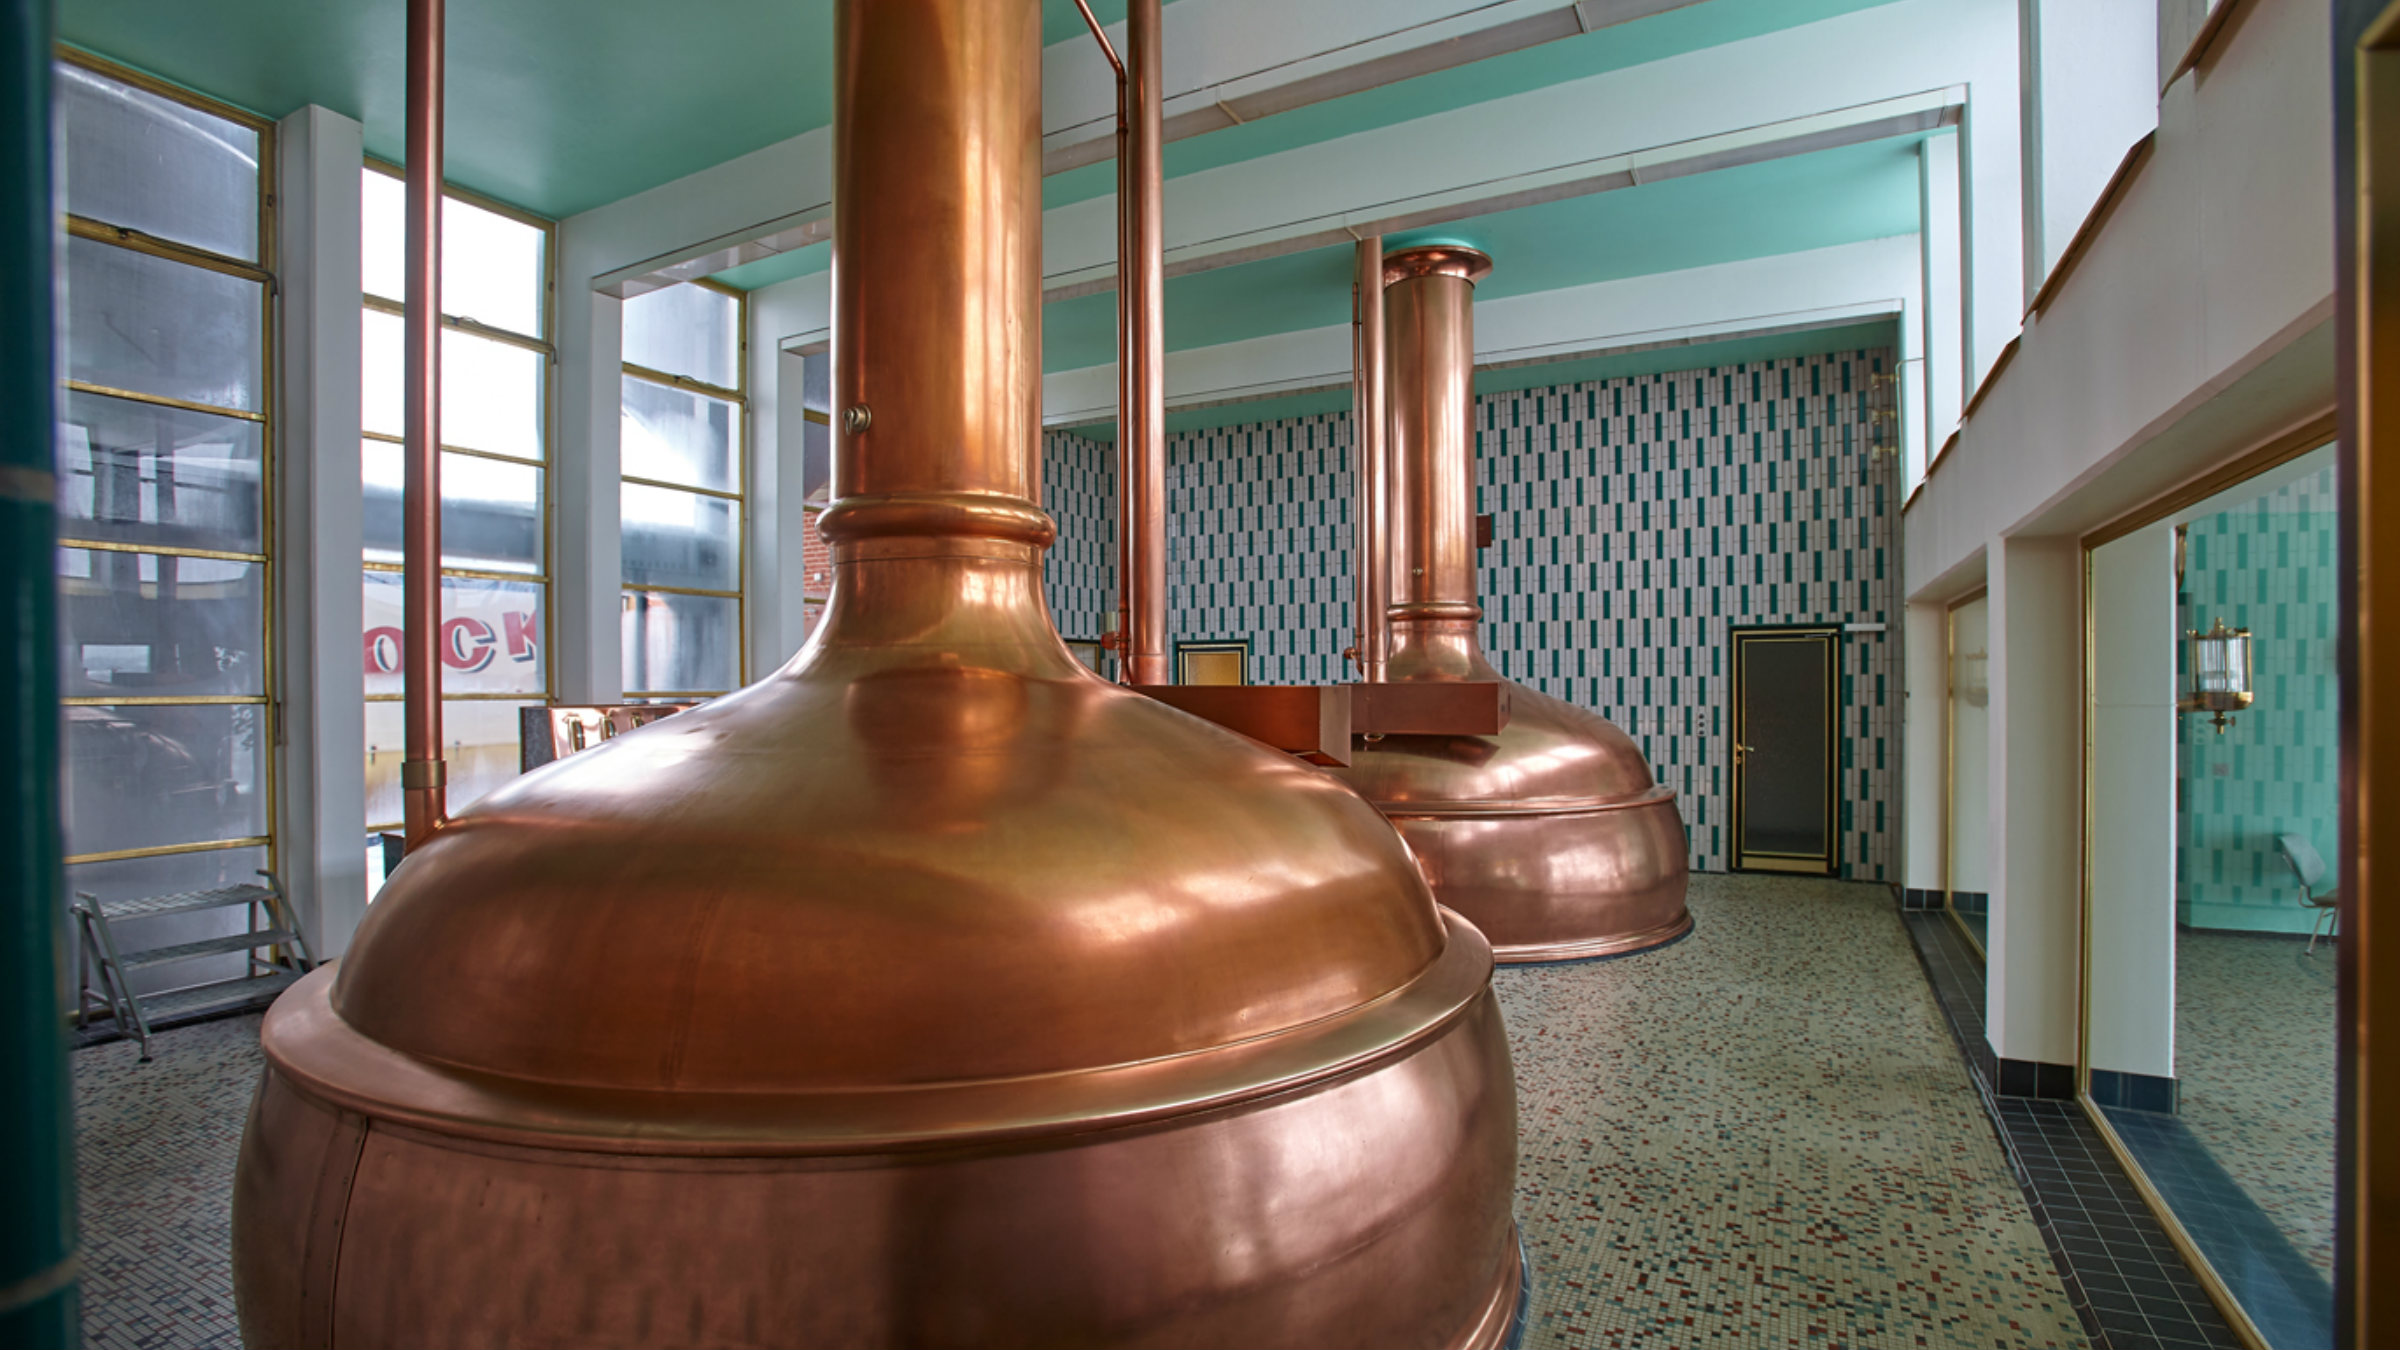 Copper kettles in the Hancock Brewery (Hancock Bryggerierne), built by Huppmann in 1962 and still in use today, Skive, Denmark.